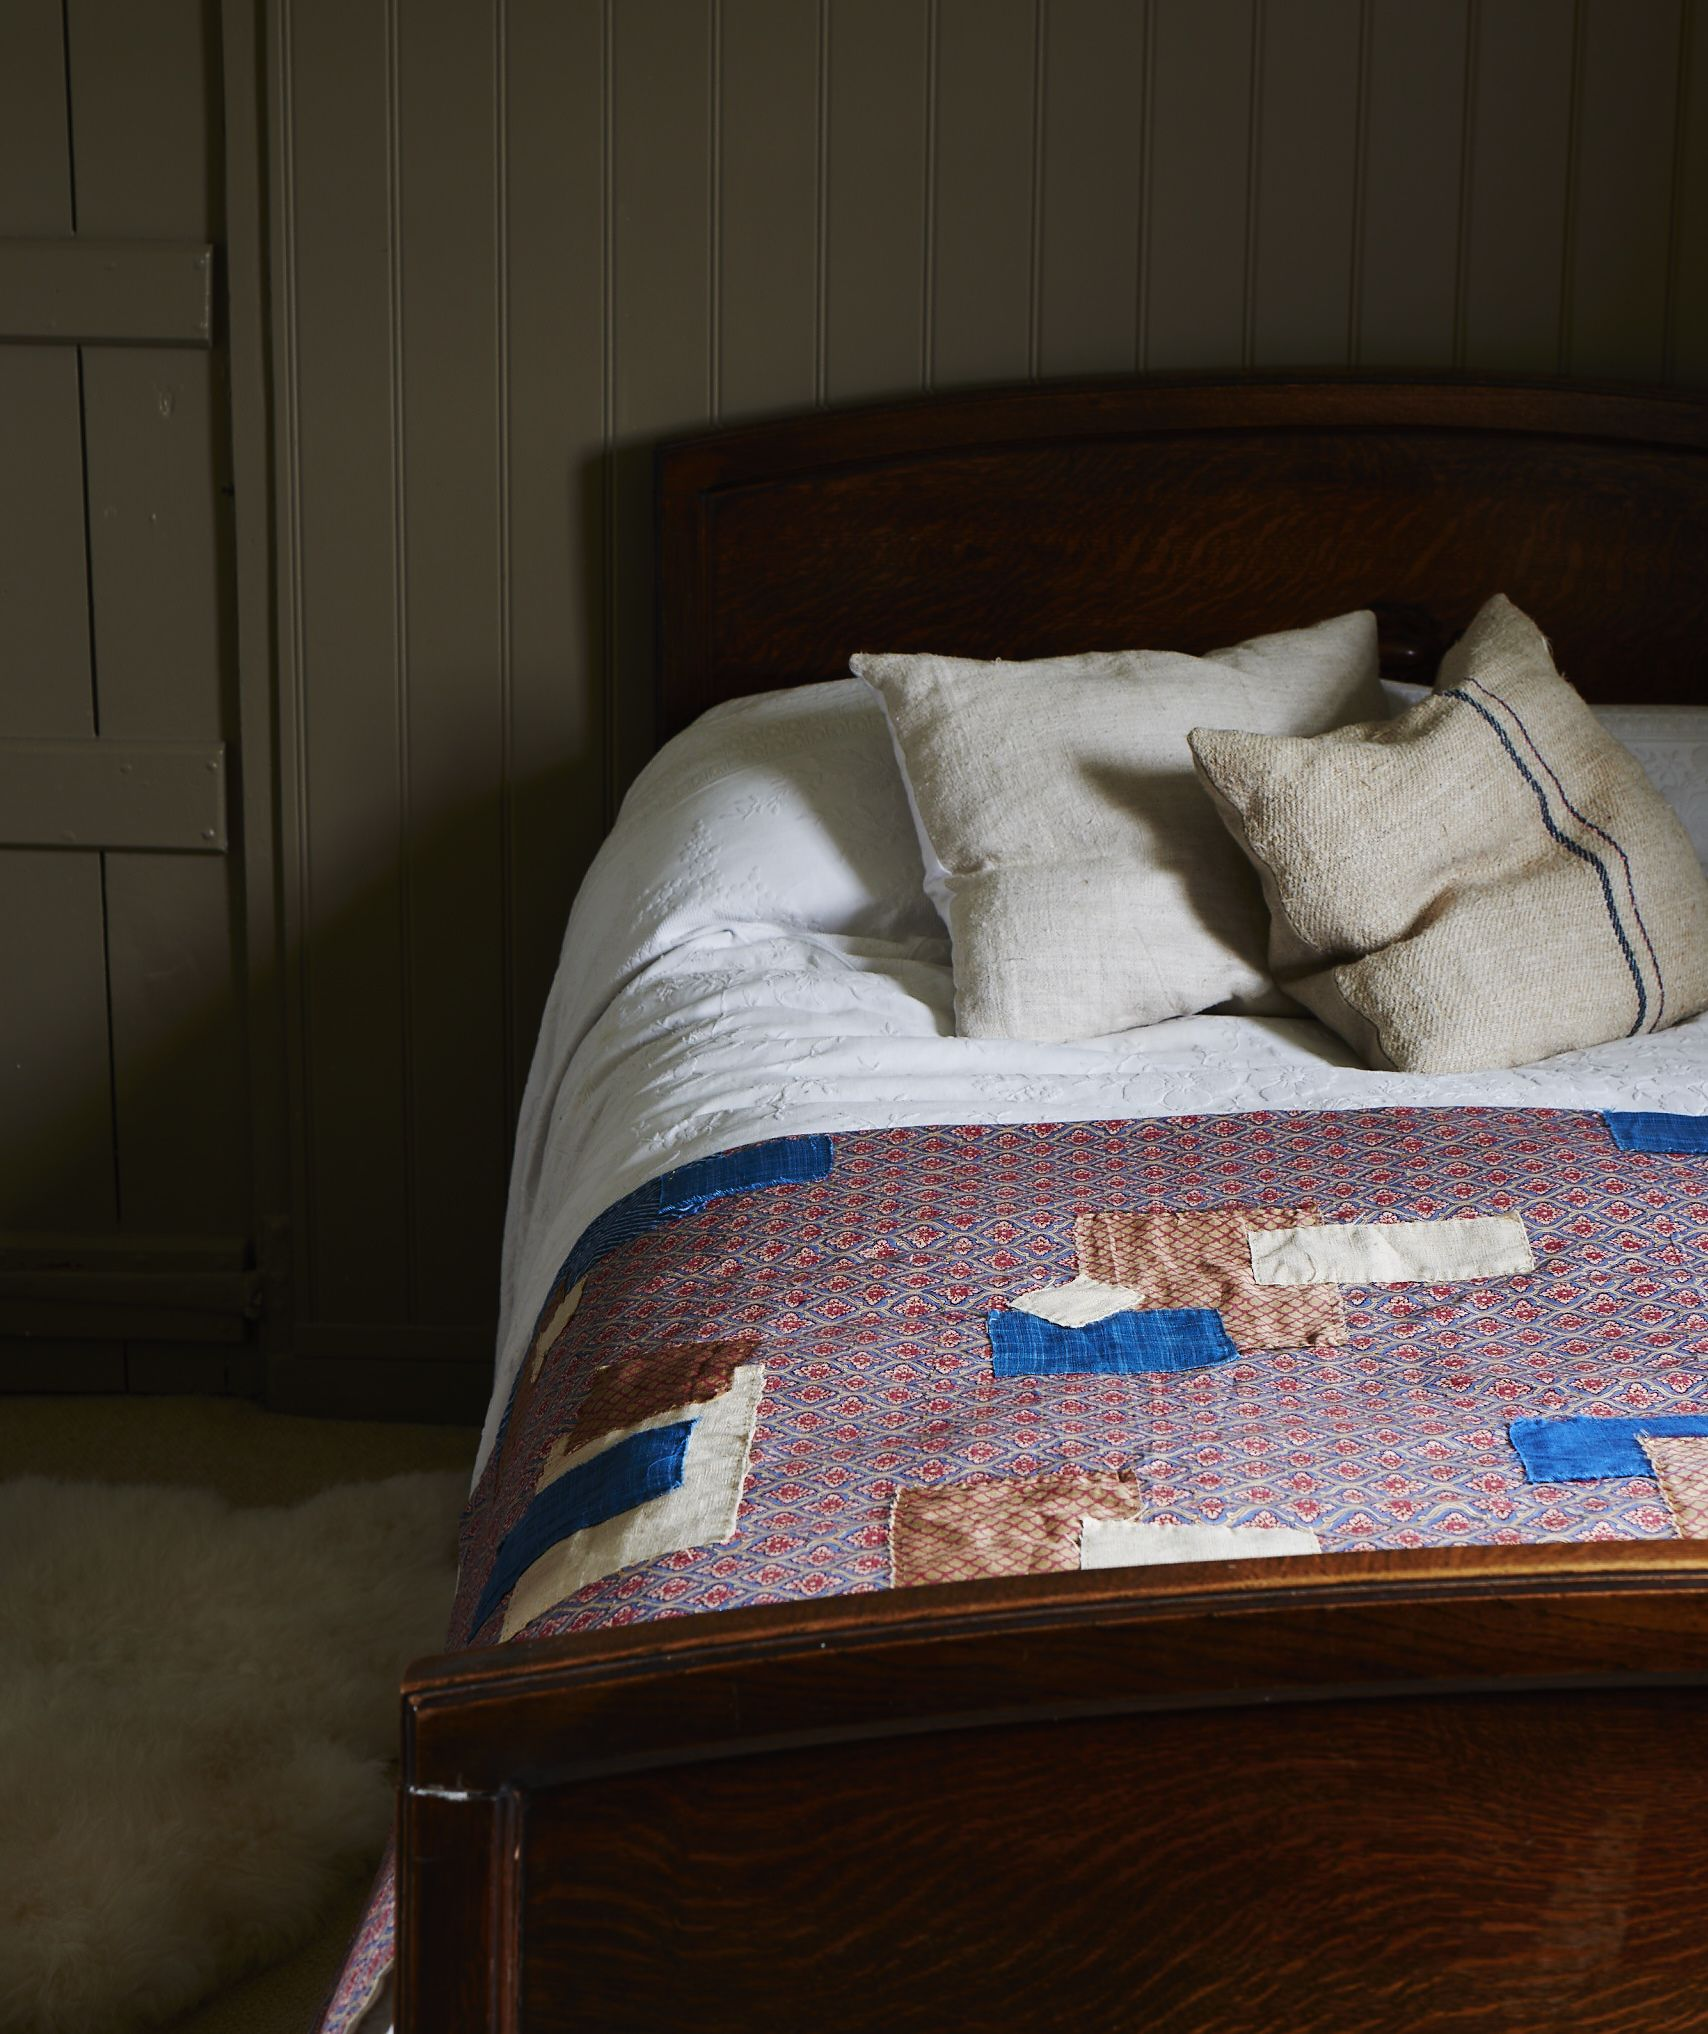 Pin by Hannah McIntosh on Dwell Maids room, Bedroom